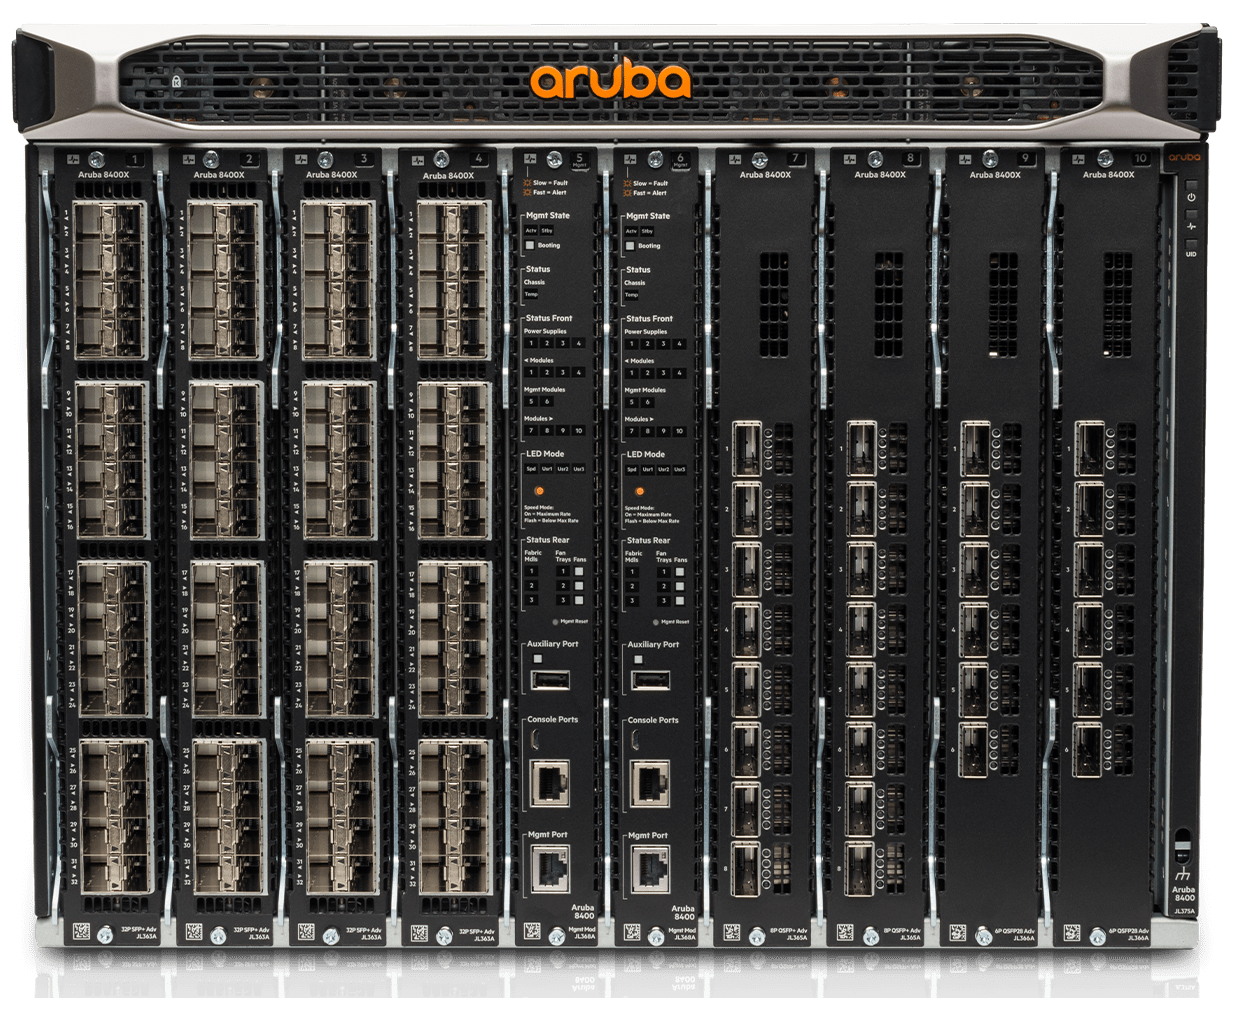 Details and specifications for the Aruba CX 8400 Switch Series